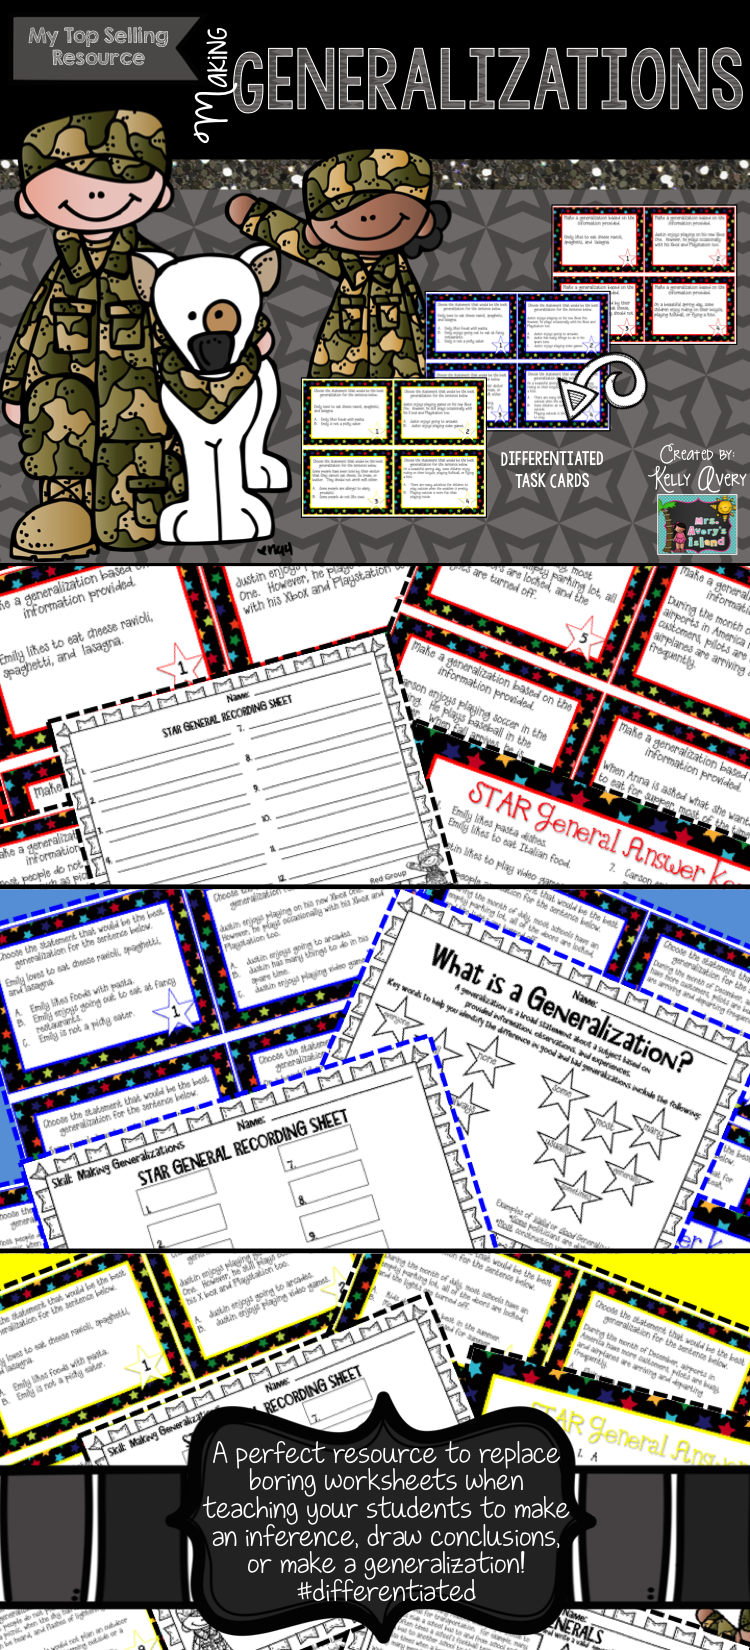 Worksheets Making Generalizations Worksheets making inferences and generalizing for reading comprehension task or generalizations teaching students how to generalize in does not have to